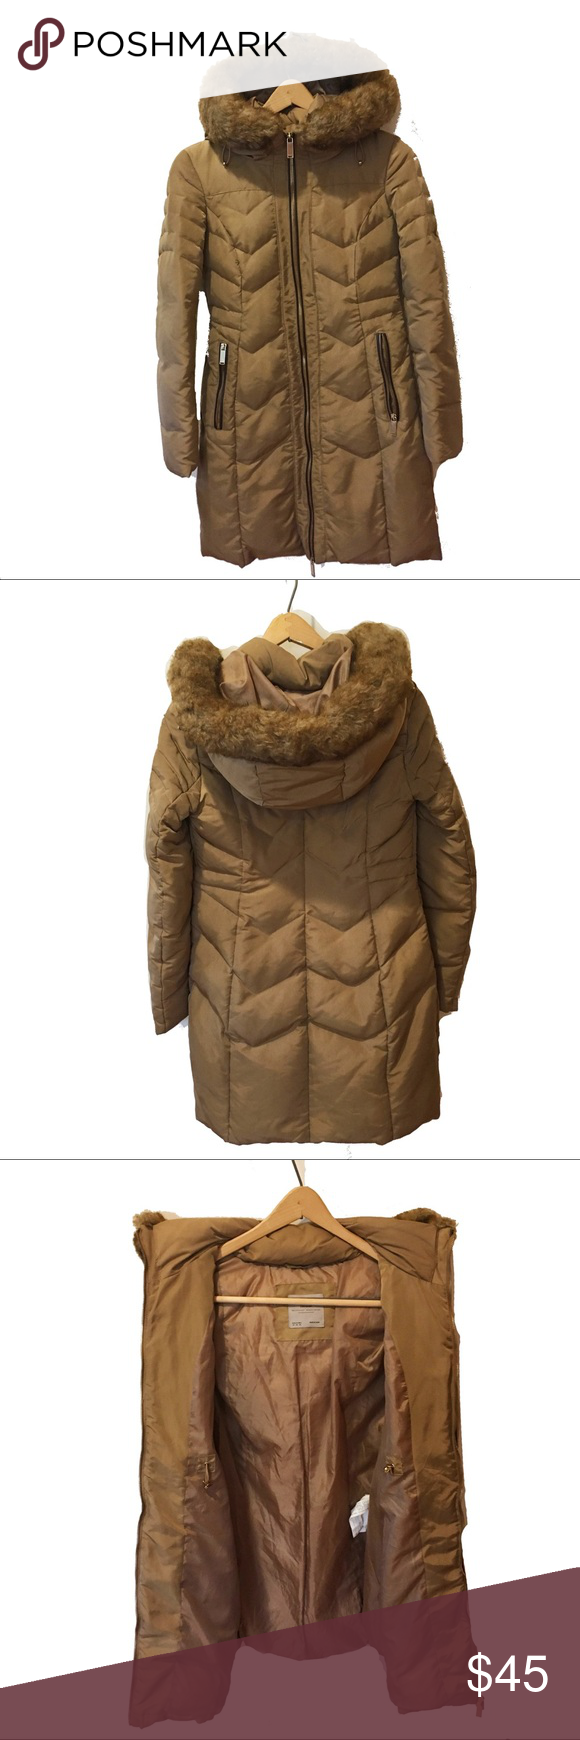 Zara Winter Down Coat Tan Down Feather Fill Puffer Jacket In A Tan Brown Color With A Faux Fur Lined Hood Good Used Conditio Zara Winter Tan Woman Down Coat [ 1740 x 580 Pixel ]